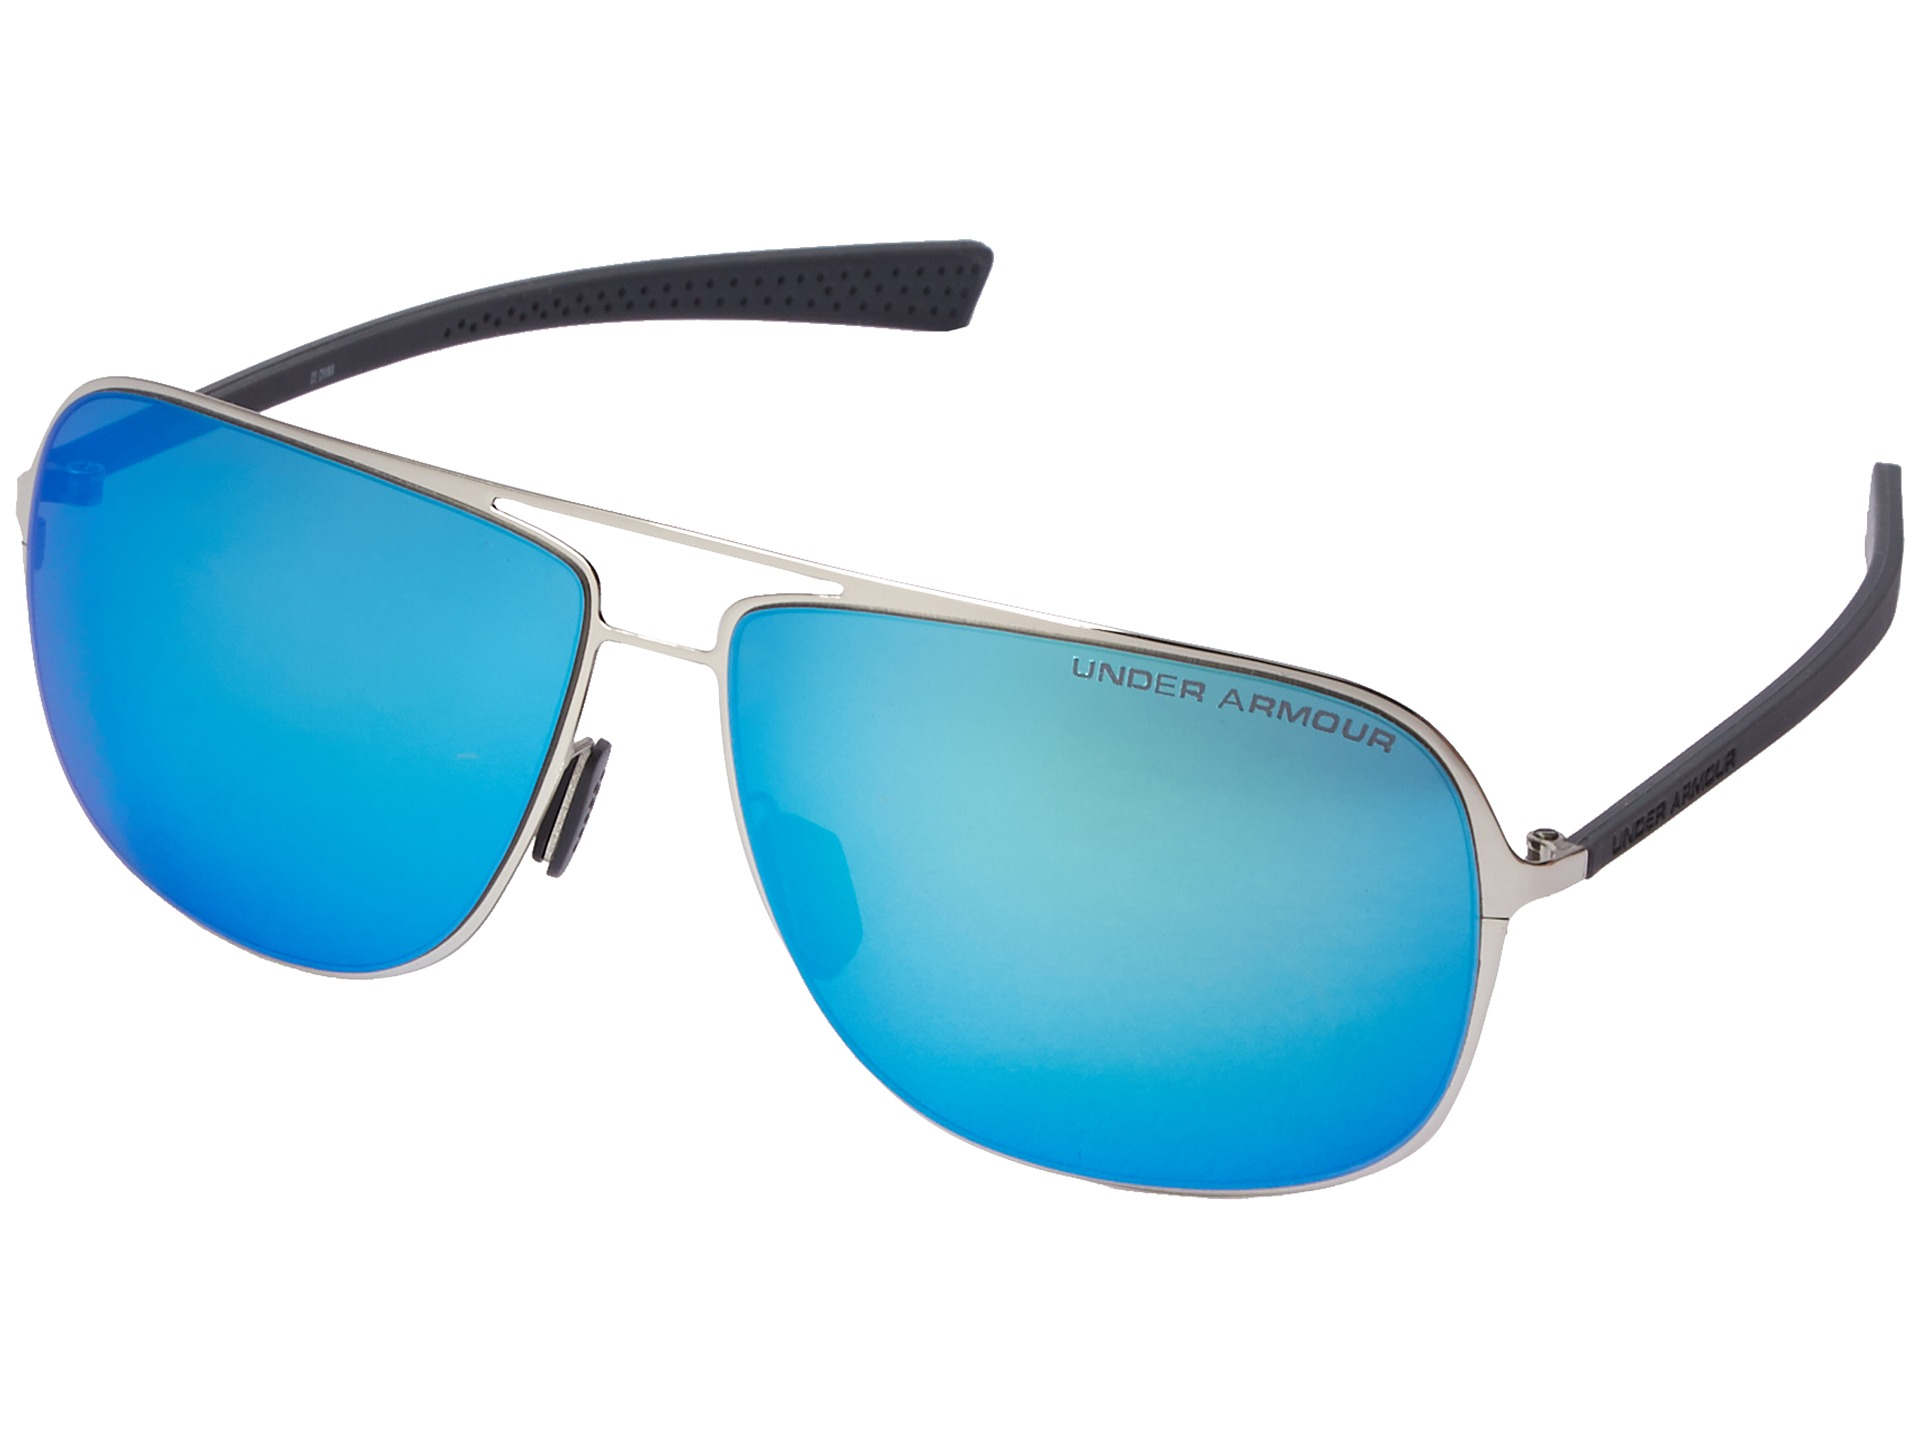 49ce30b0077 Uv Protection Sunglasses « One More Soul